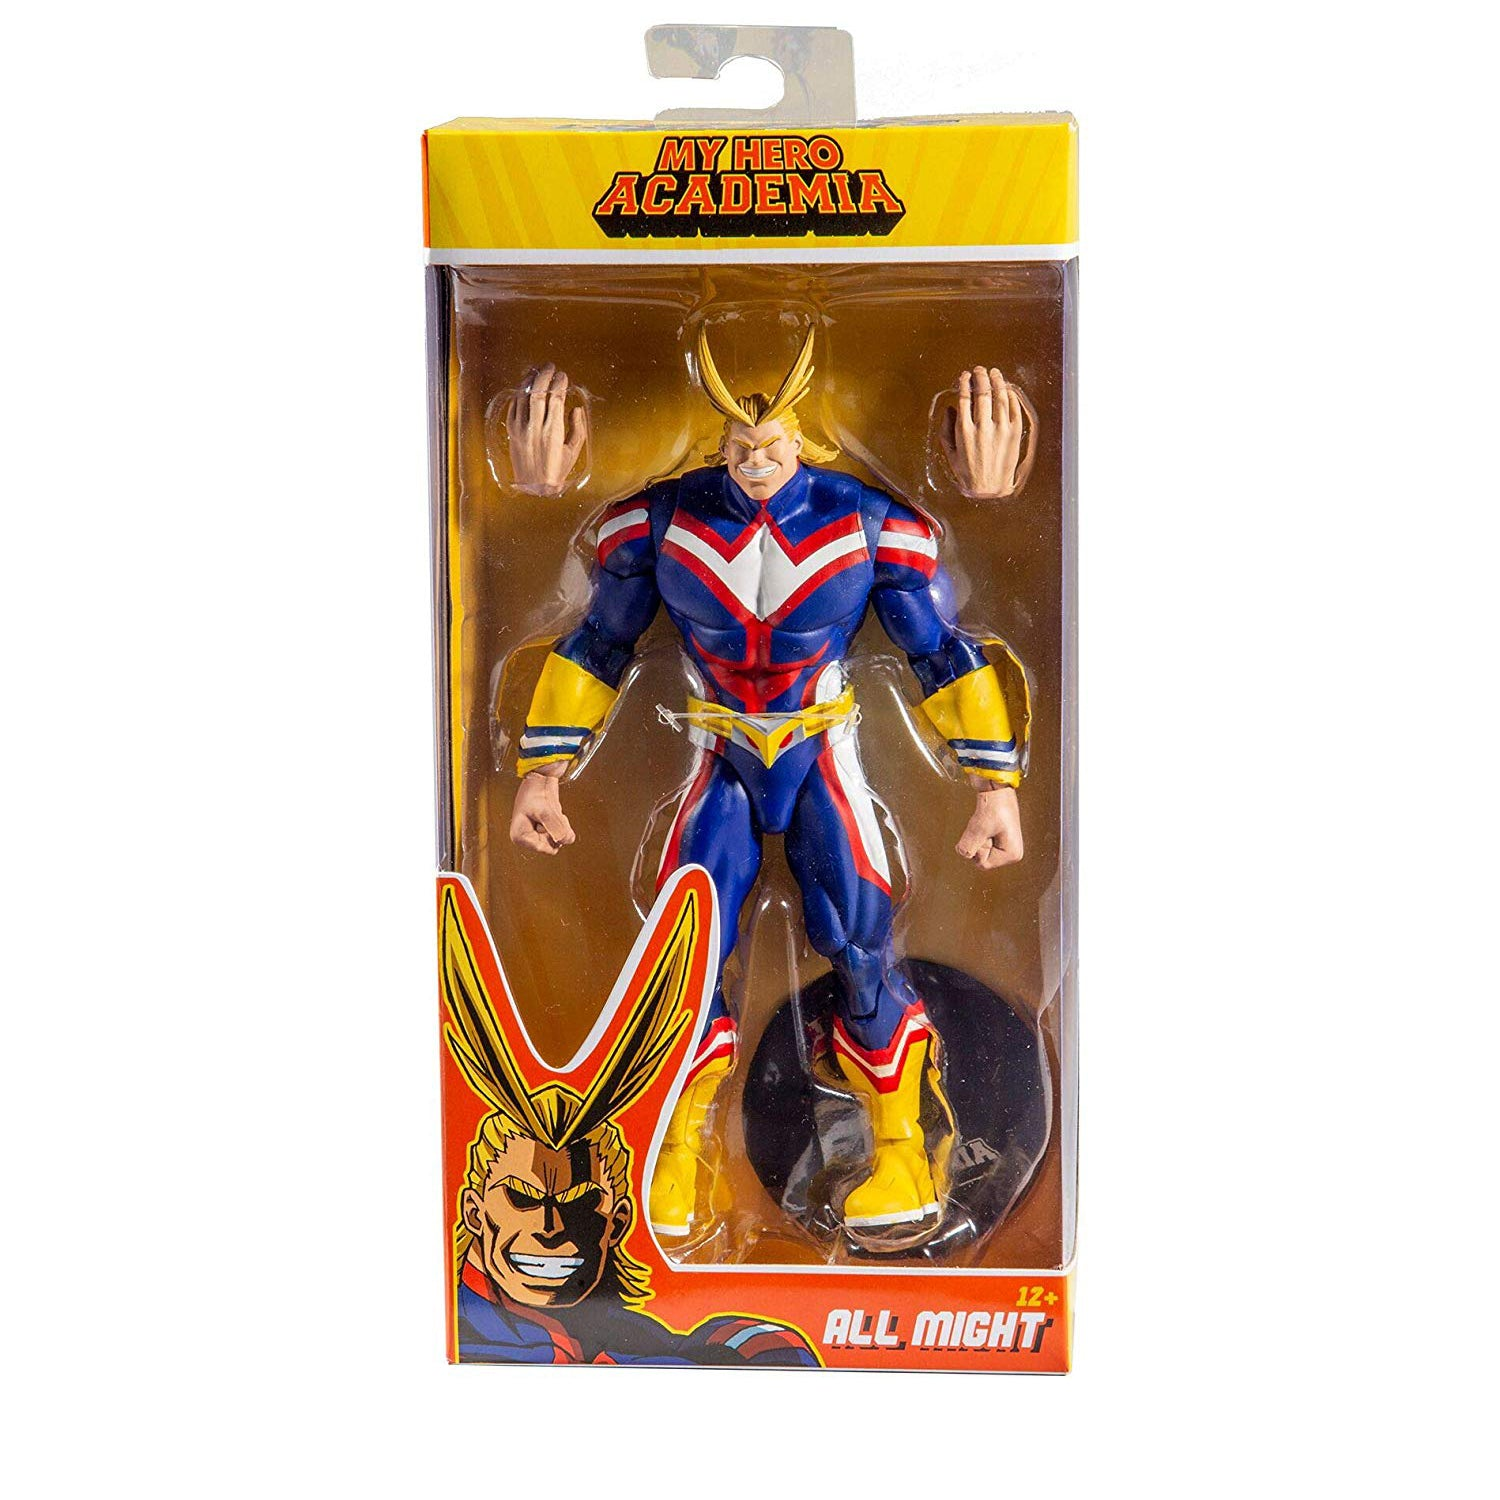 My Hero Academia All Might Action Figure